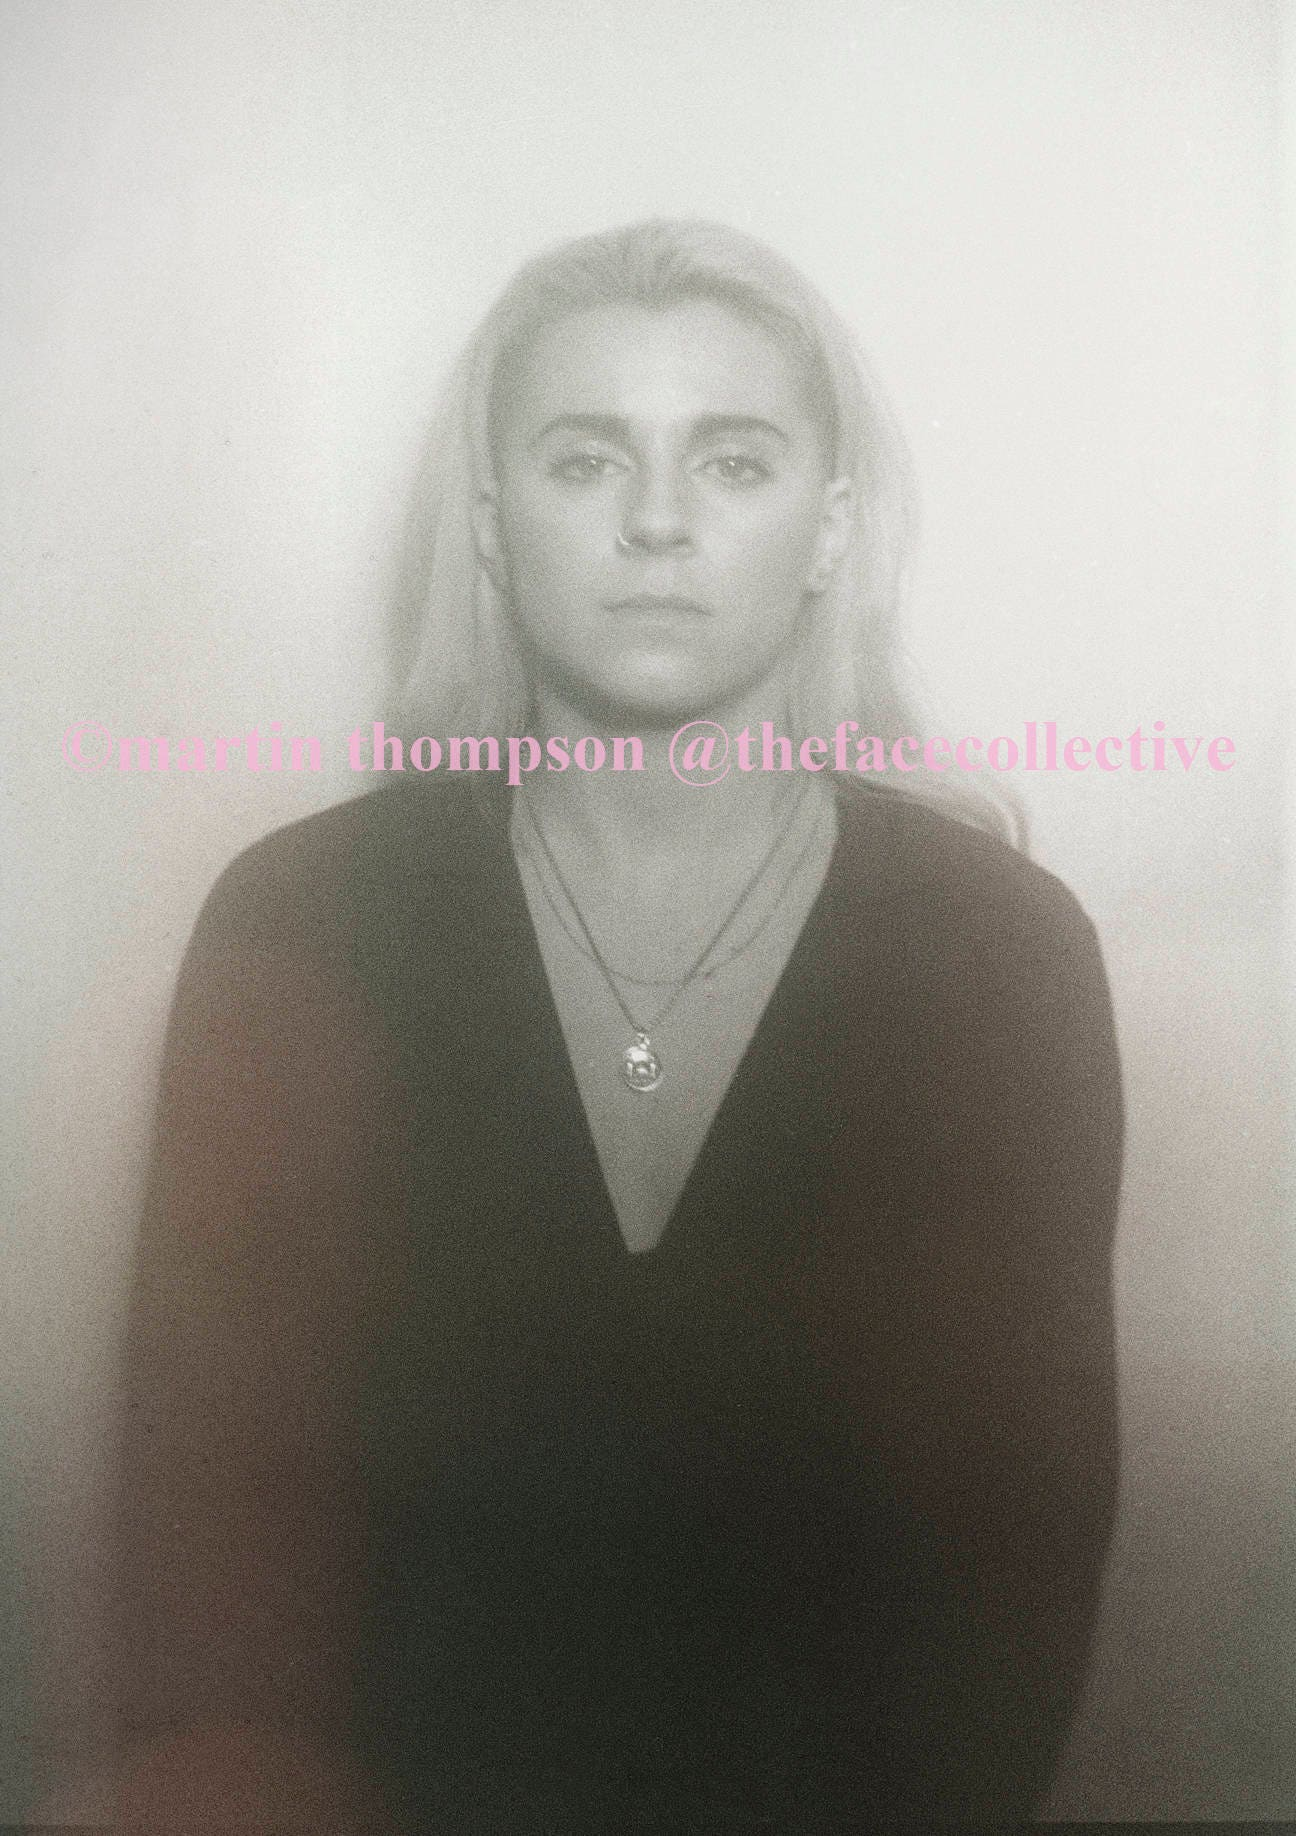 PVRIS Lynn Gunn Numbered Limited Edition Exhibition Vintage Photographic Fine Art Giclee Prints Free Worldwide Shipping Ltd